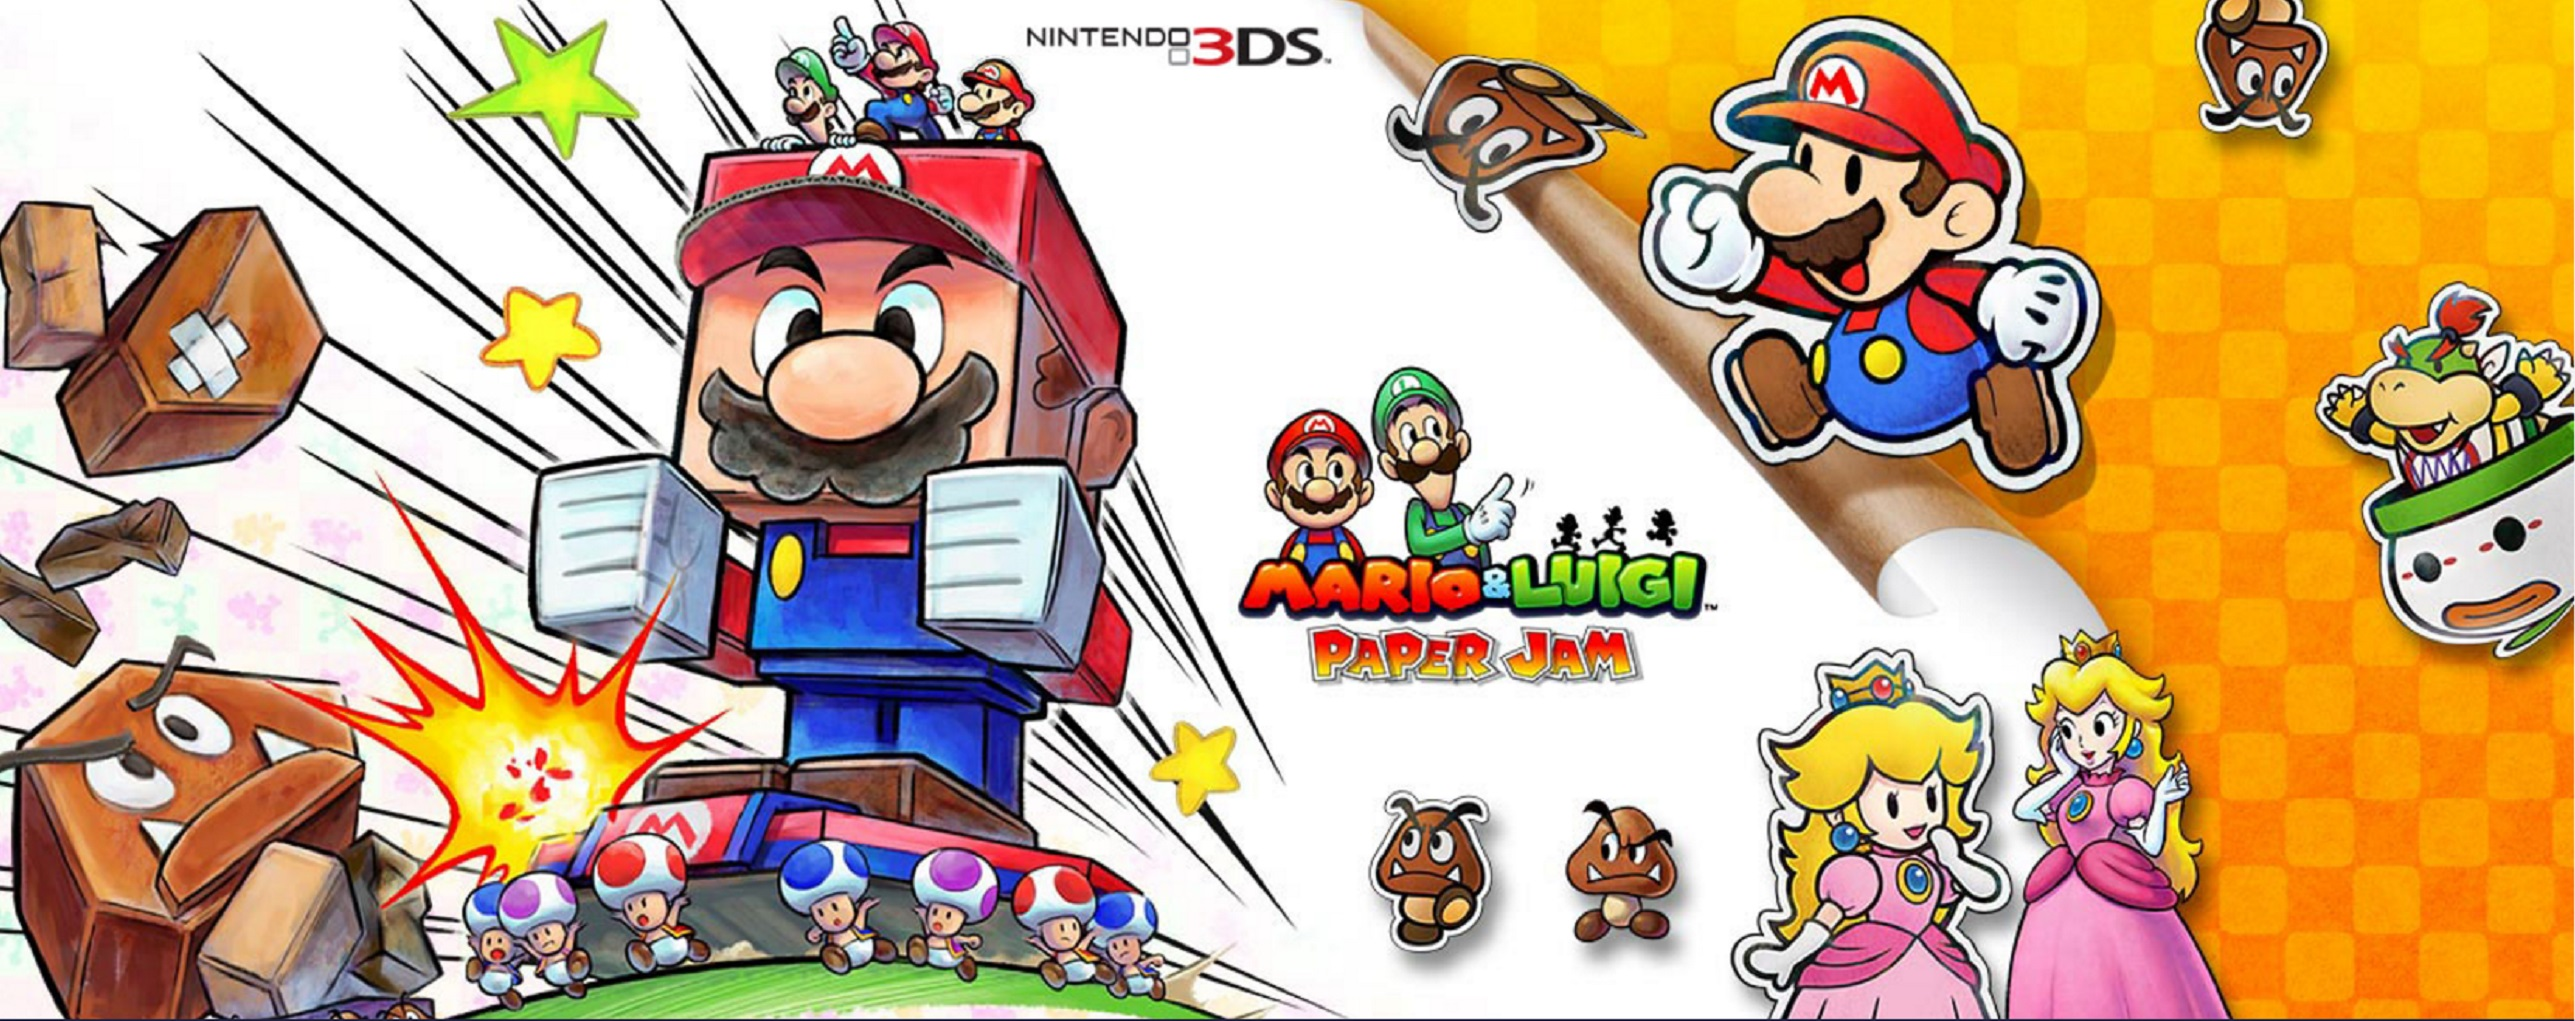 Pictures of super mario and luigi impremedia mario and luigi paper jam wallpaper cast artwork official nintendo 3ds altavistaventures Gallery